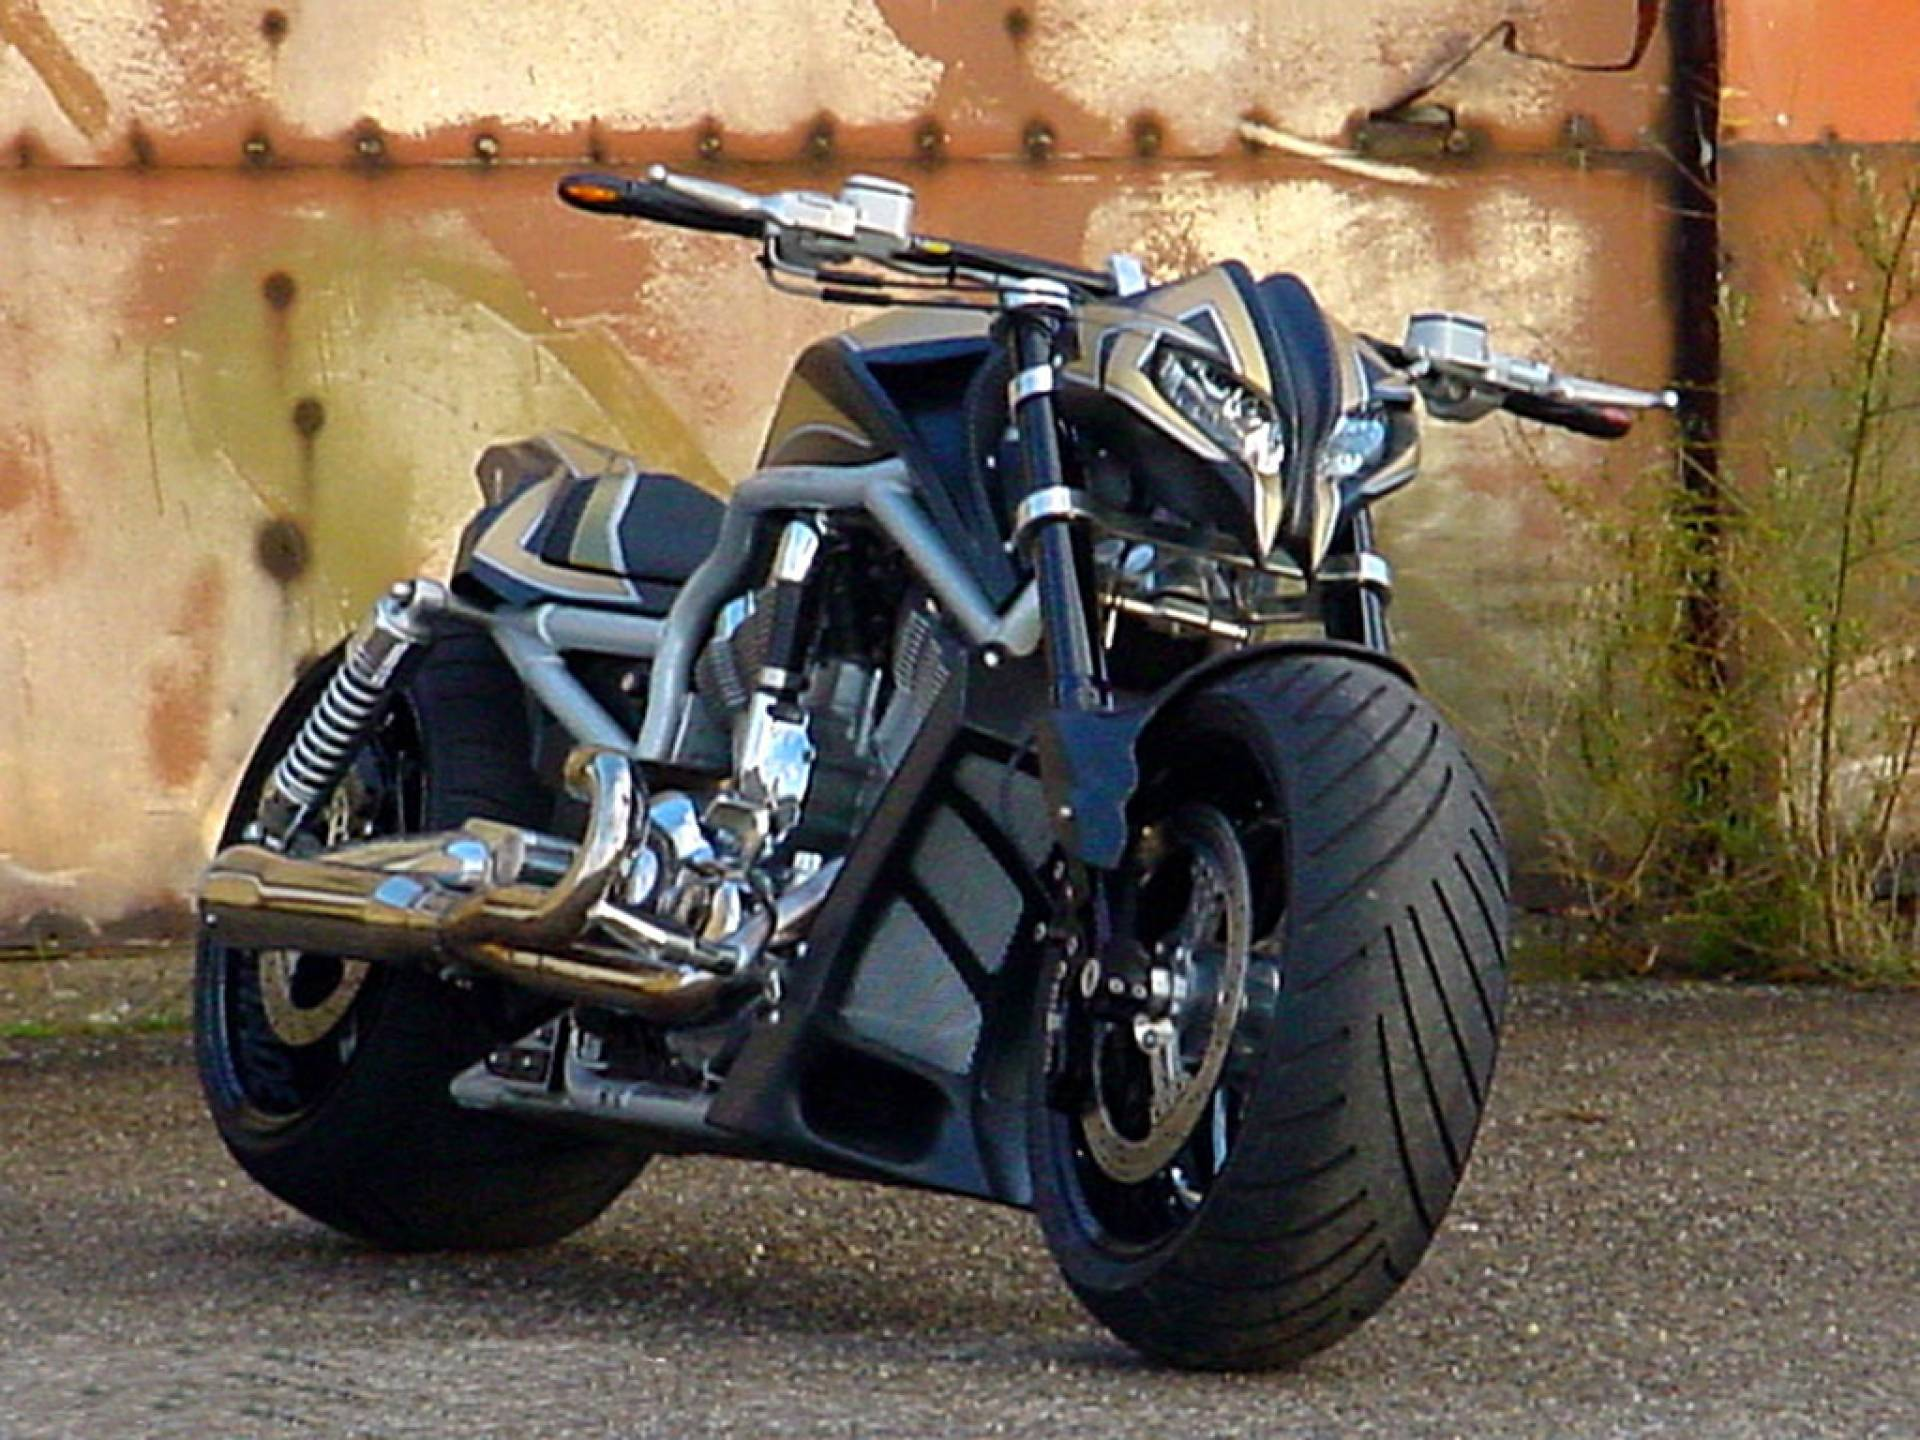 Harley Davidson Bike HD Wallpaper